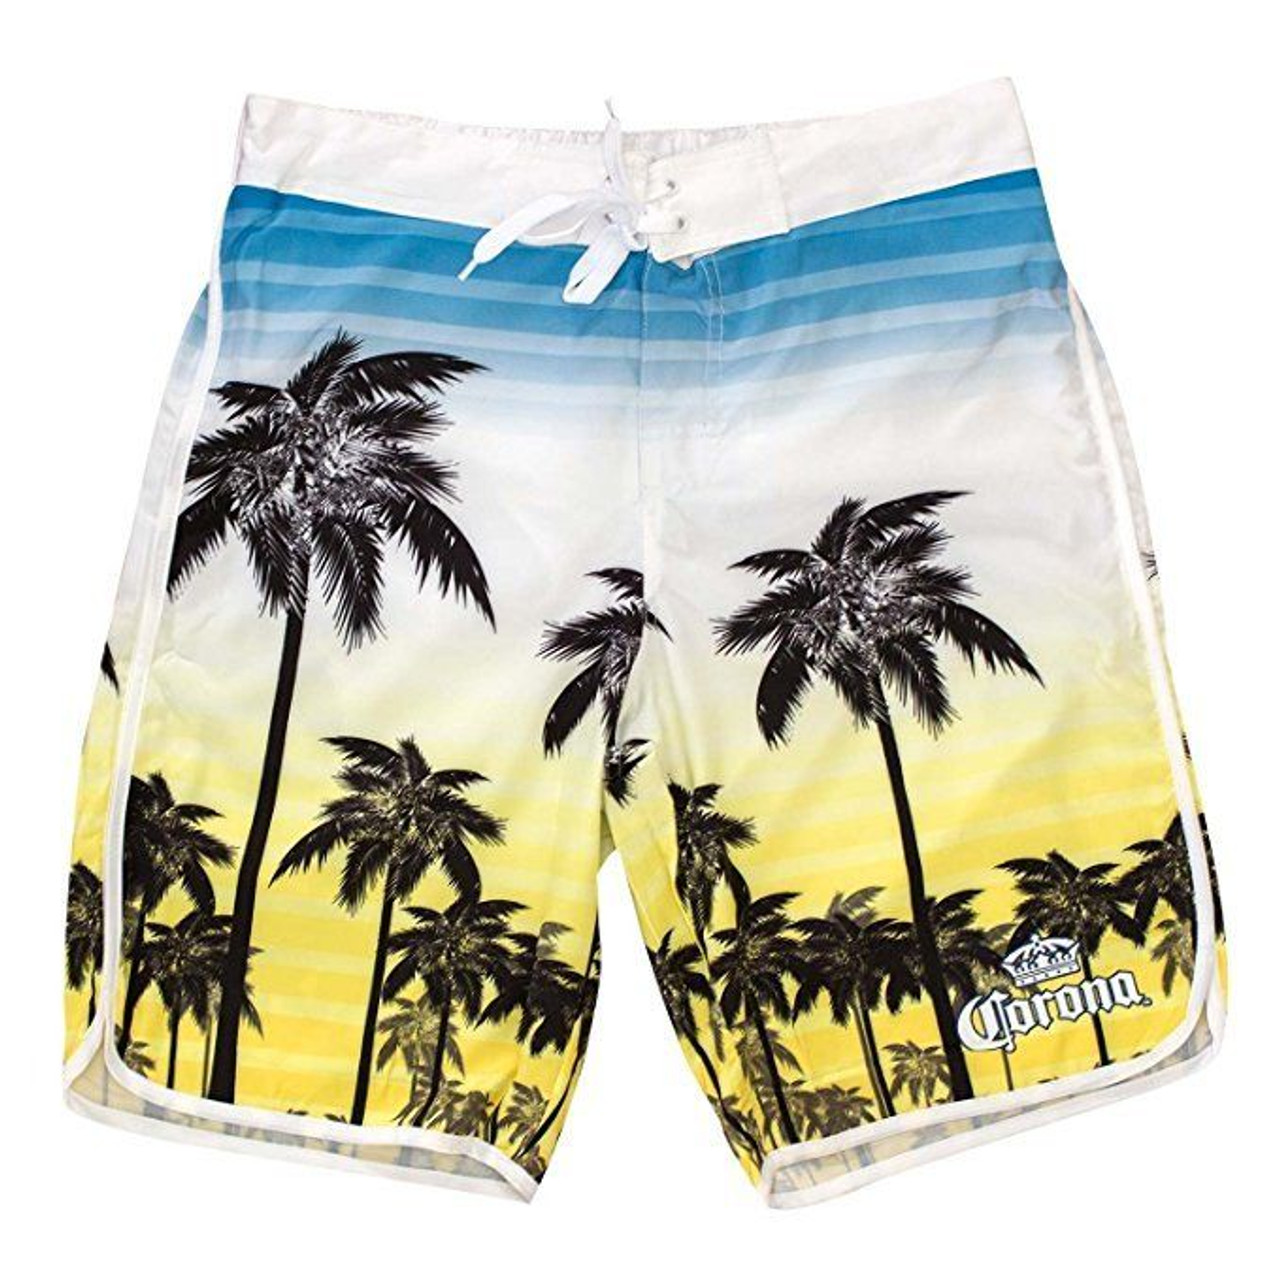 b995c3f227 Corona Beer Sunset Palm Tree Stripe Summer Swim Beach Mens Board Shorts  CMBS8 - Fearless Apparel